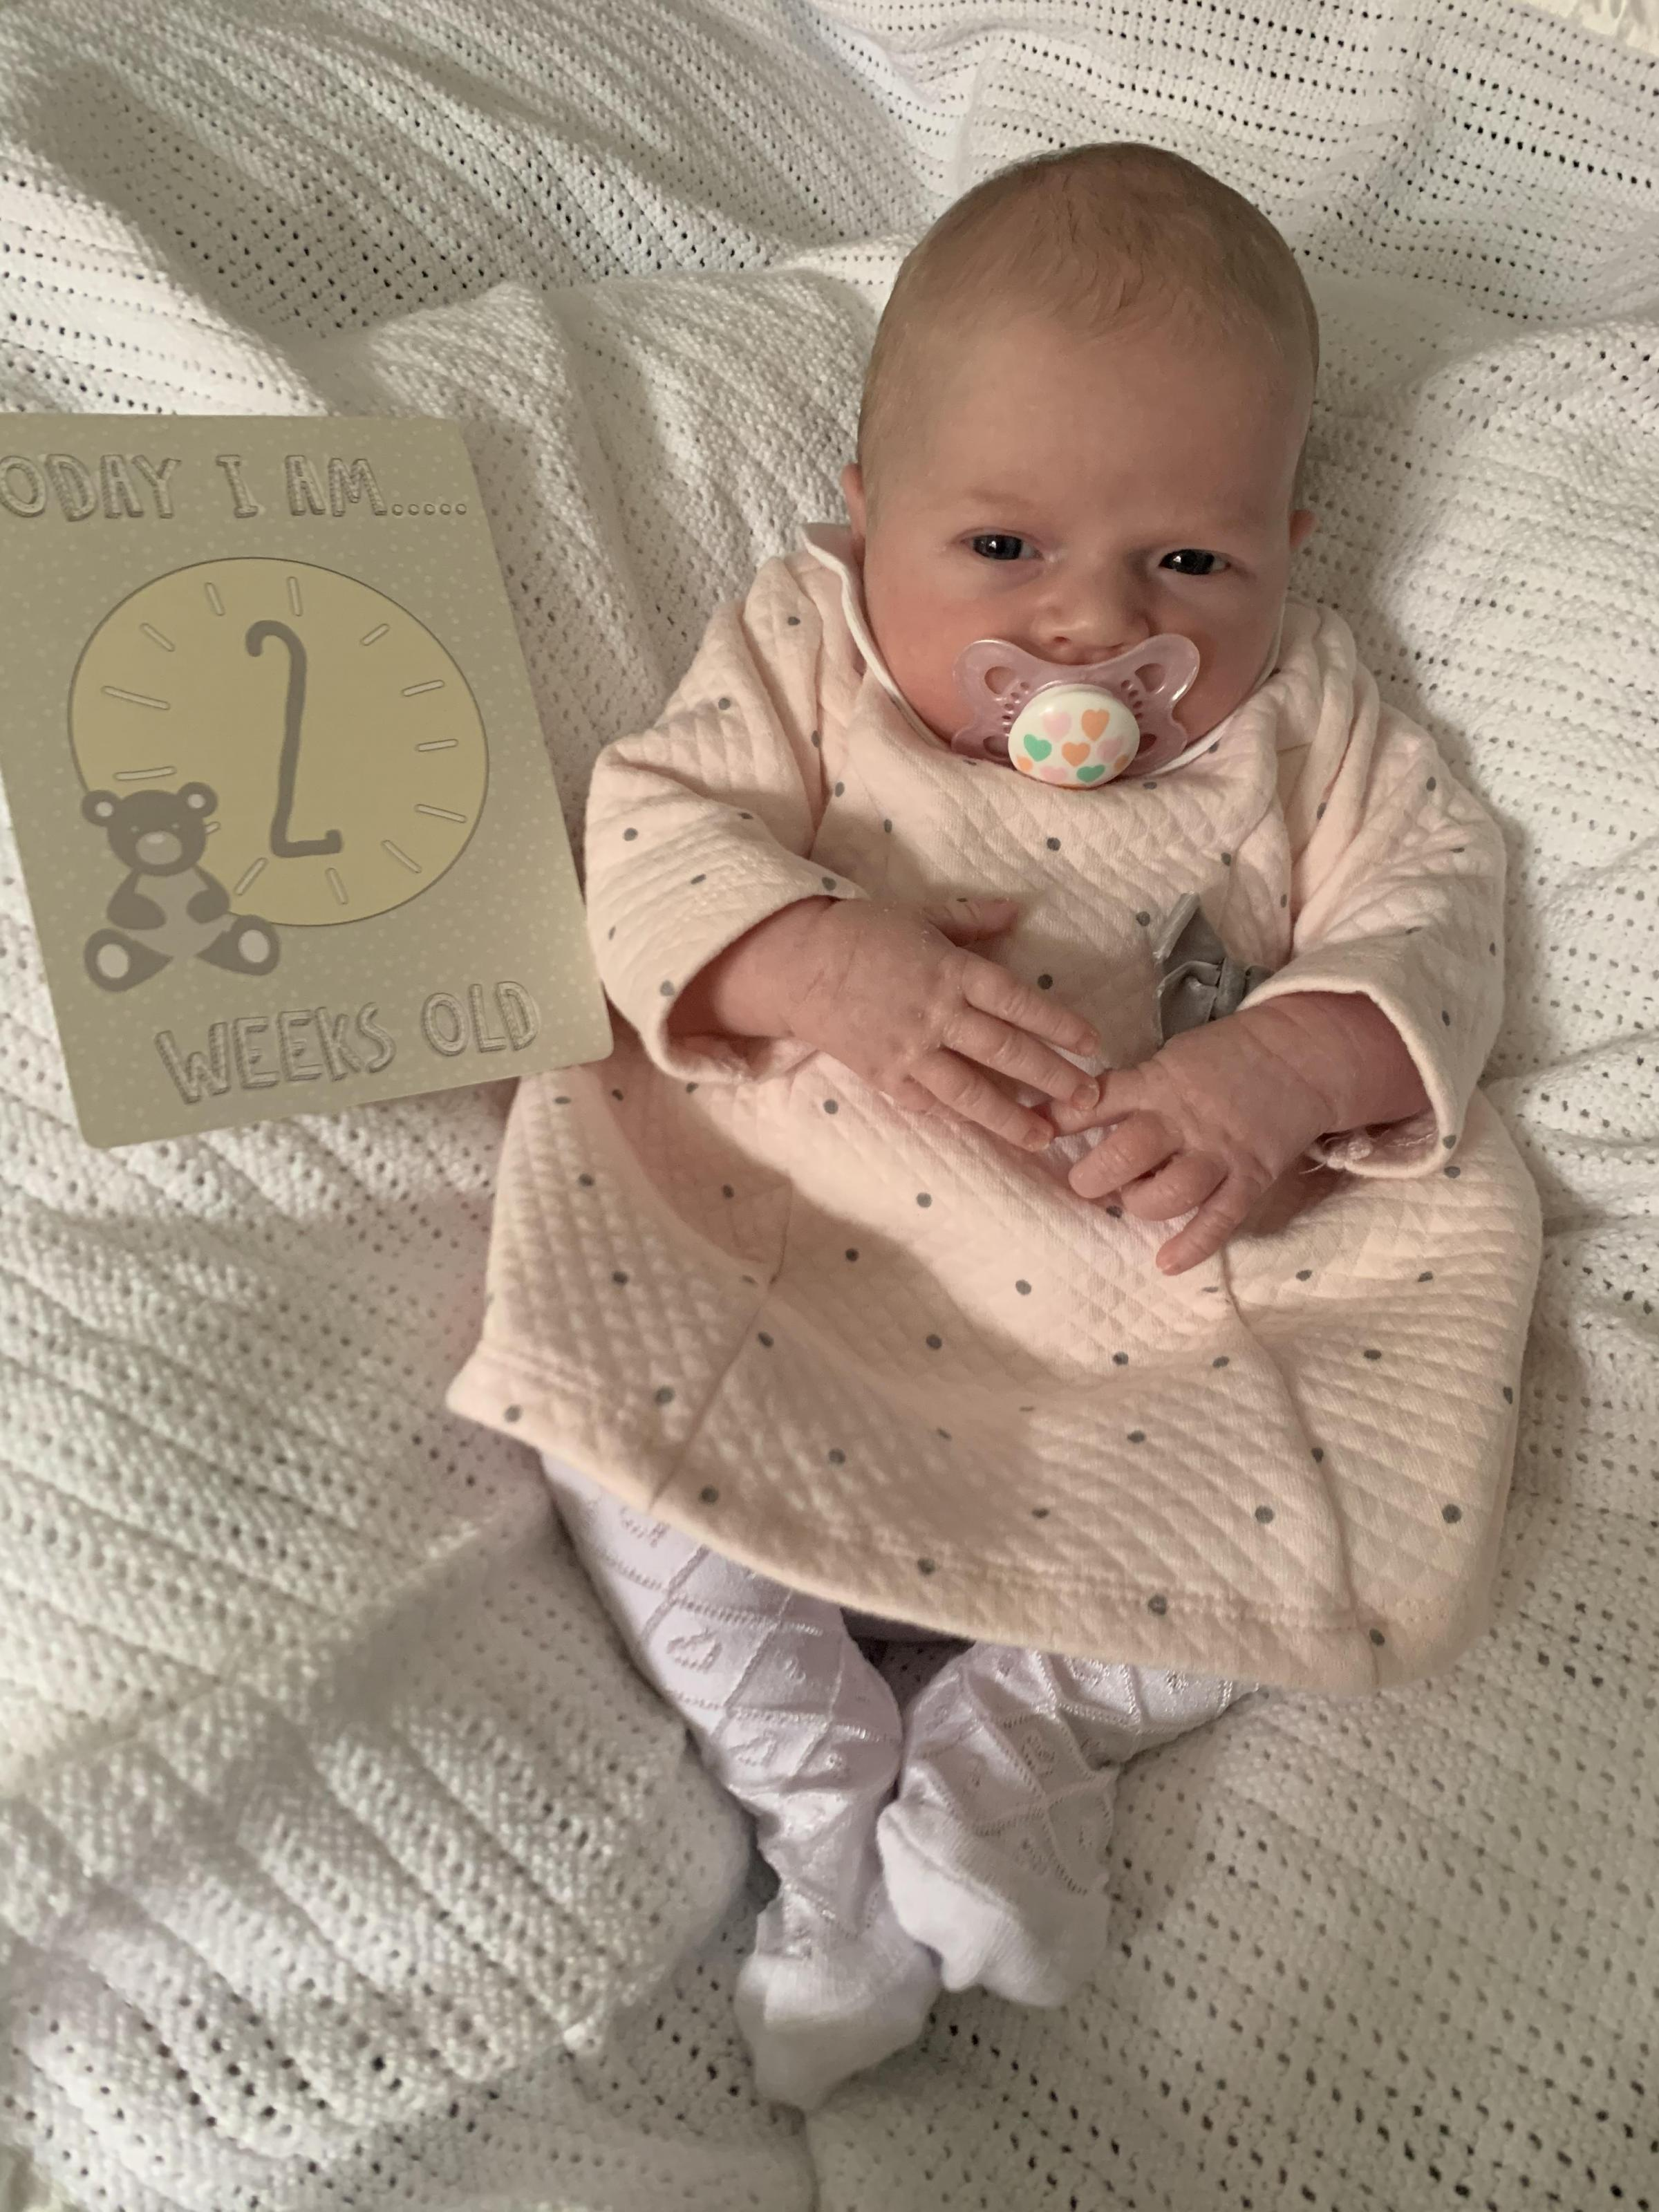 St Helens Star: Ivy May Hughes at 2 weeks old now weighing 7lb 4oz